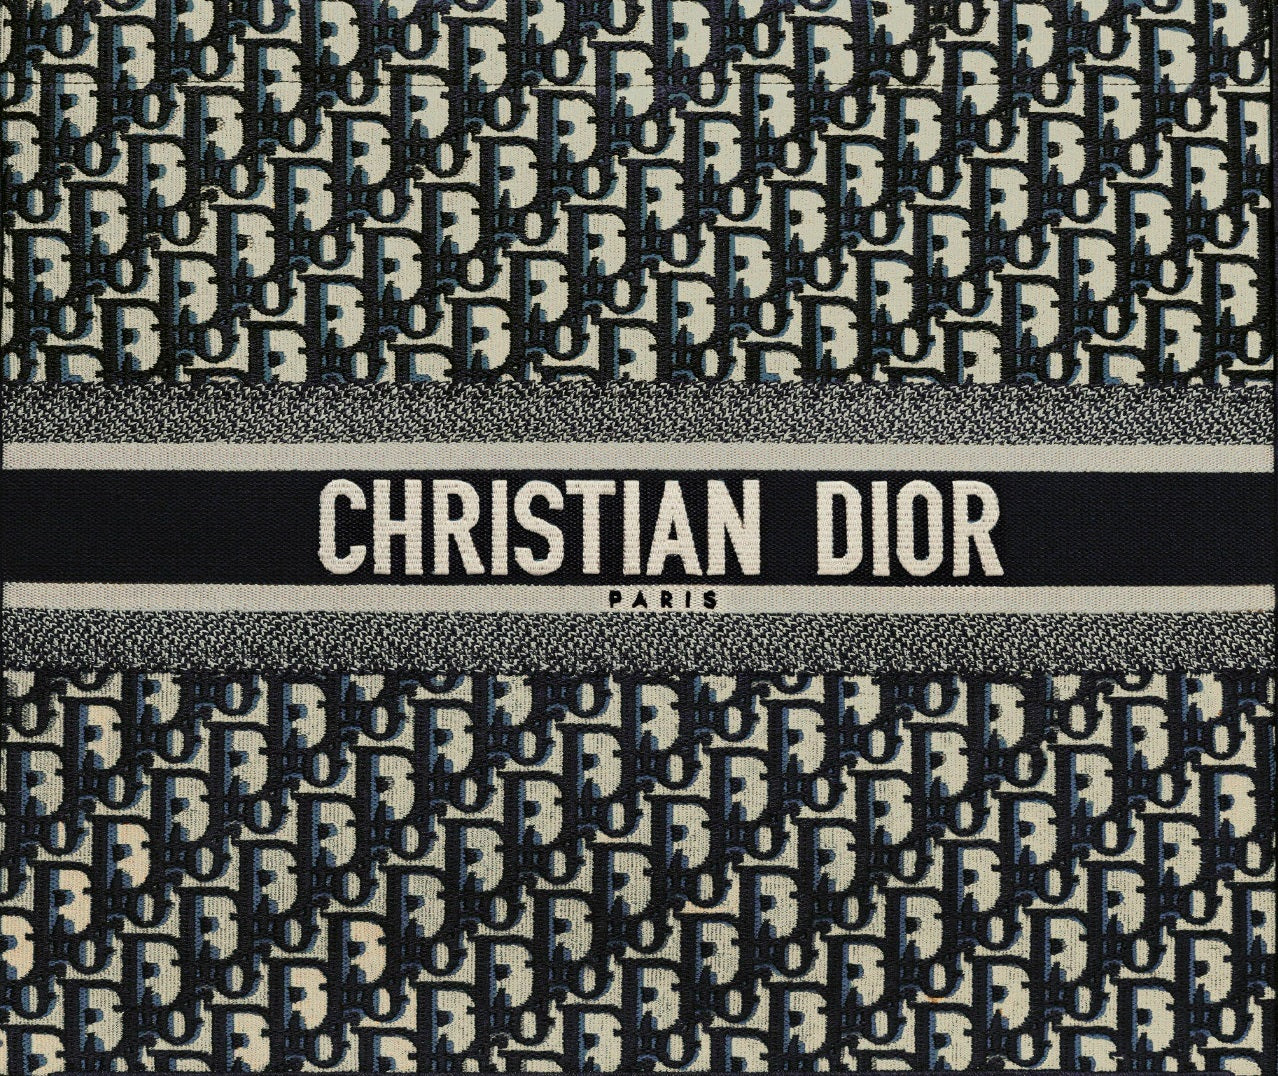 Ultimate Dior Leather Guide: What Are Dior Bags Made Of? dior emboidery